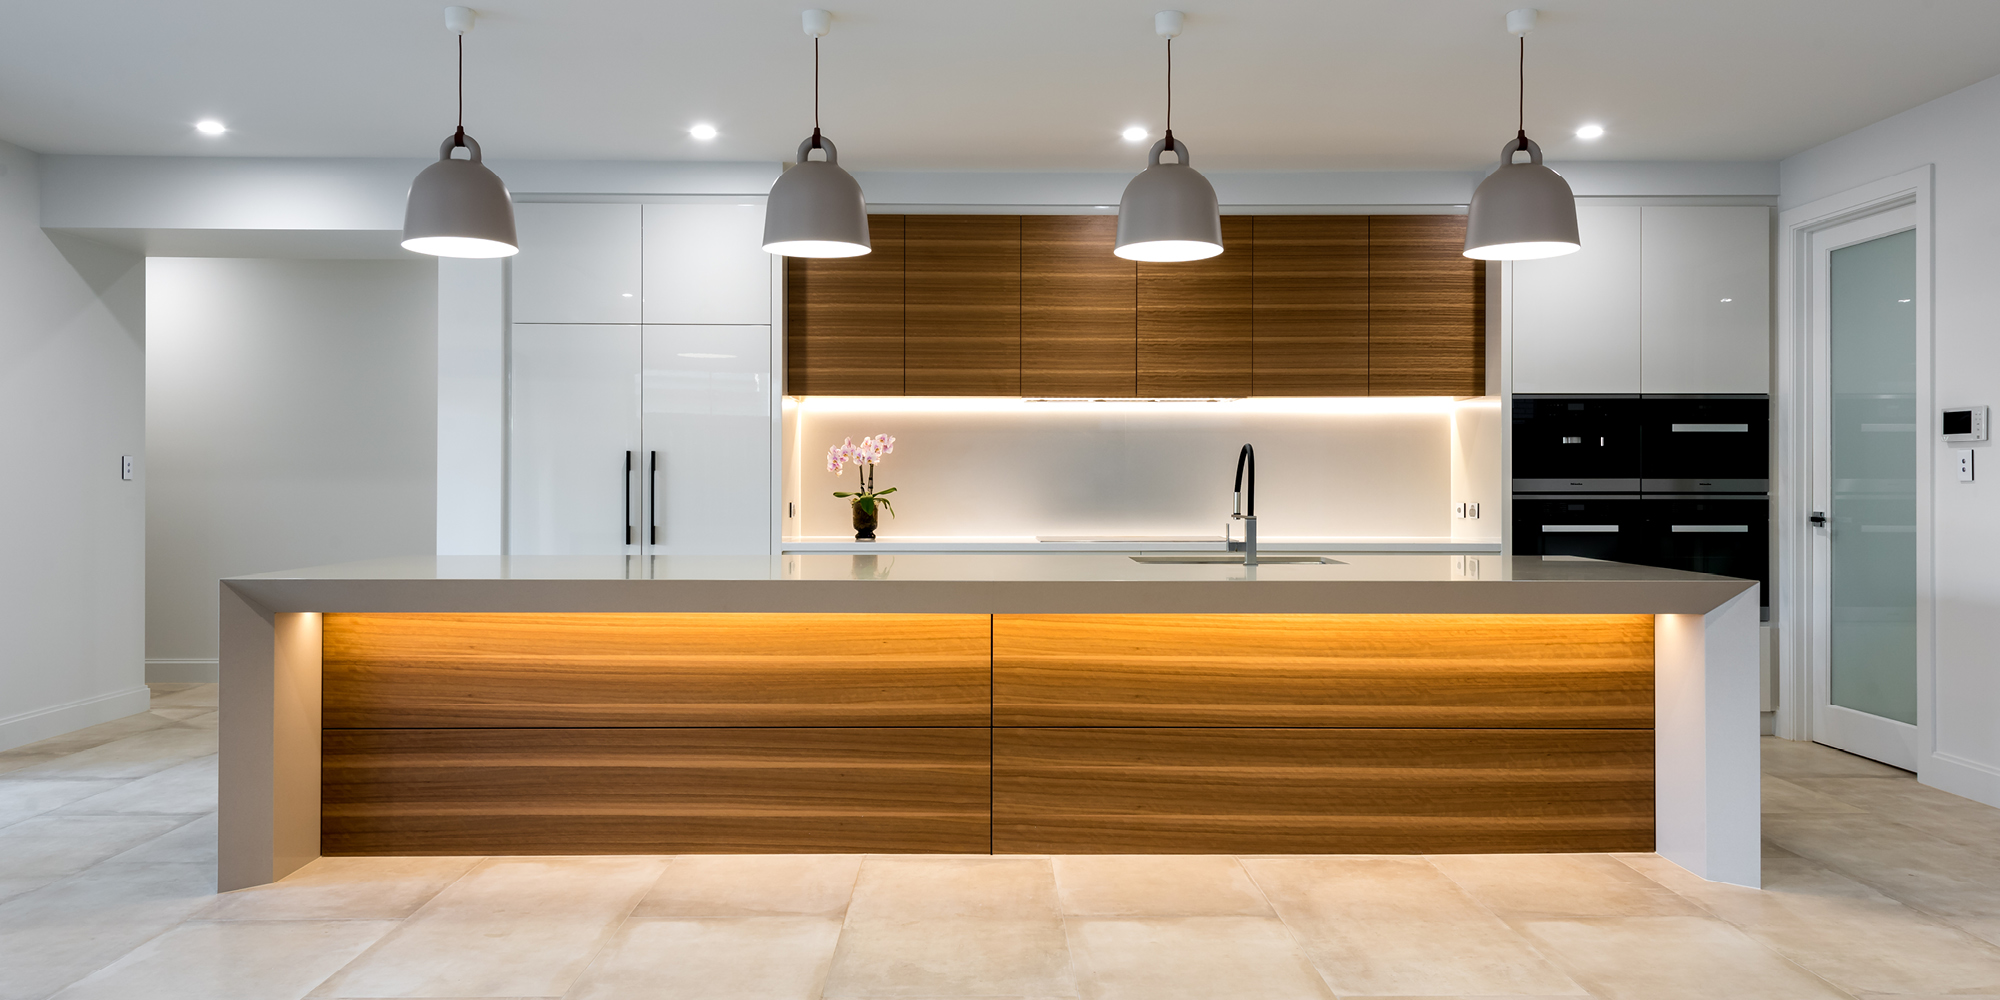 Normus Homes luxury kitchen